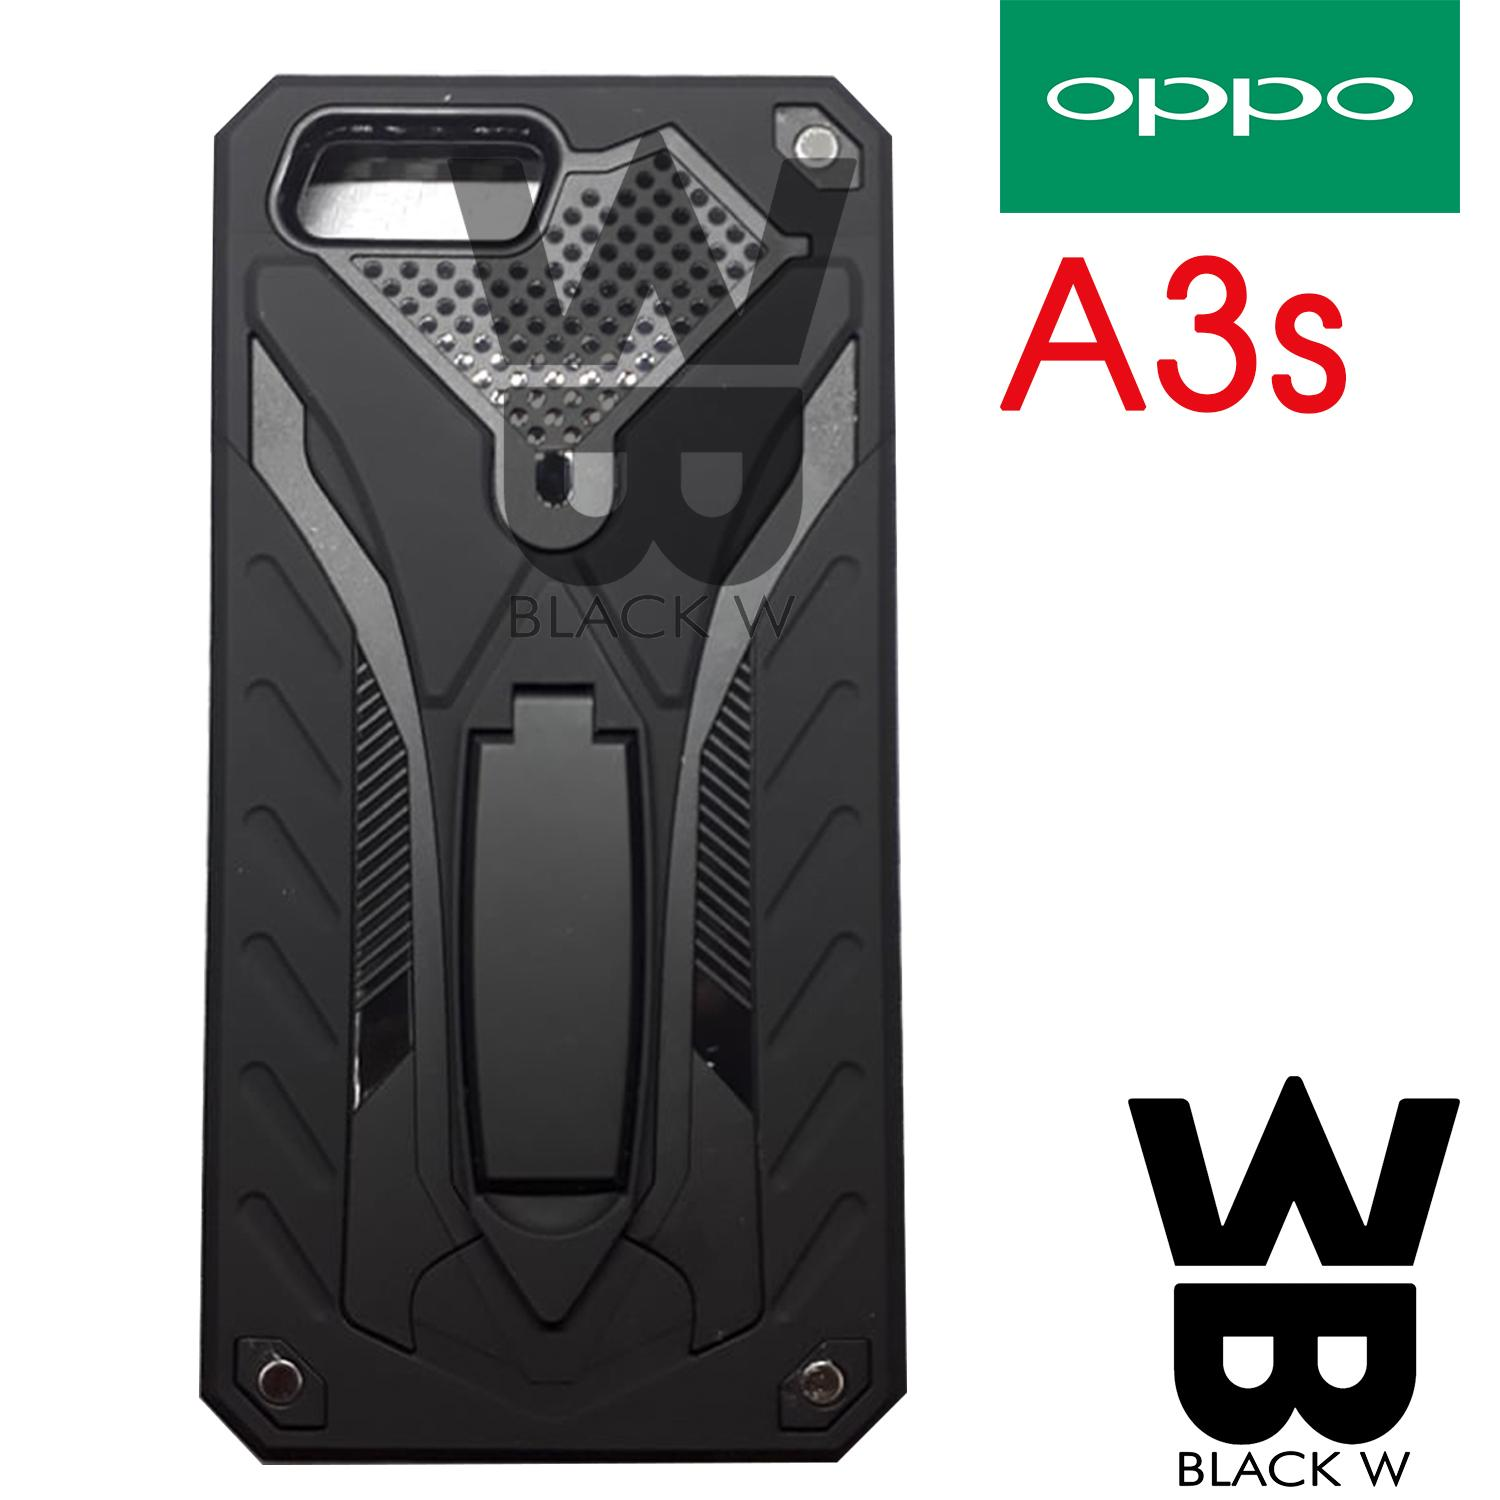 bf5c75fc15 Phone Cases for sale - Cellphone Cases price, brands & offers online ...